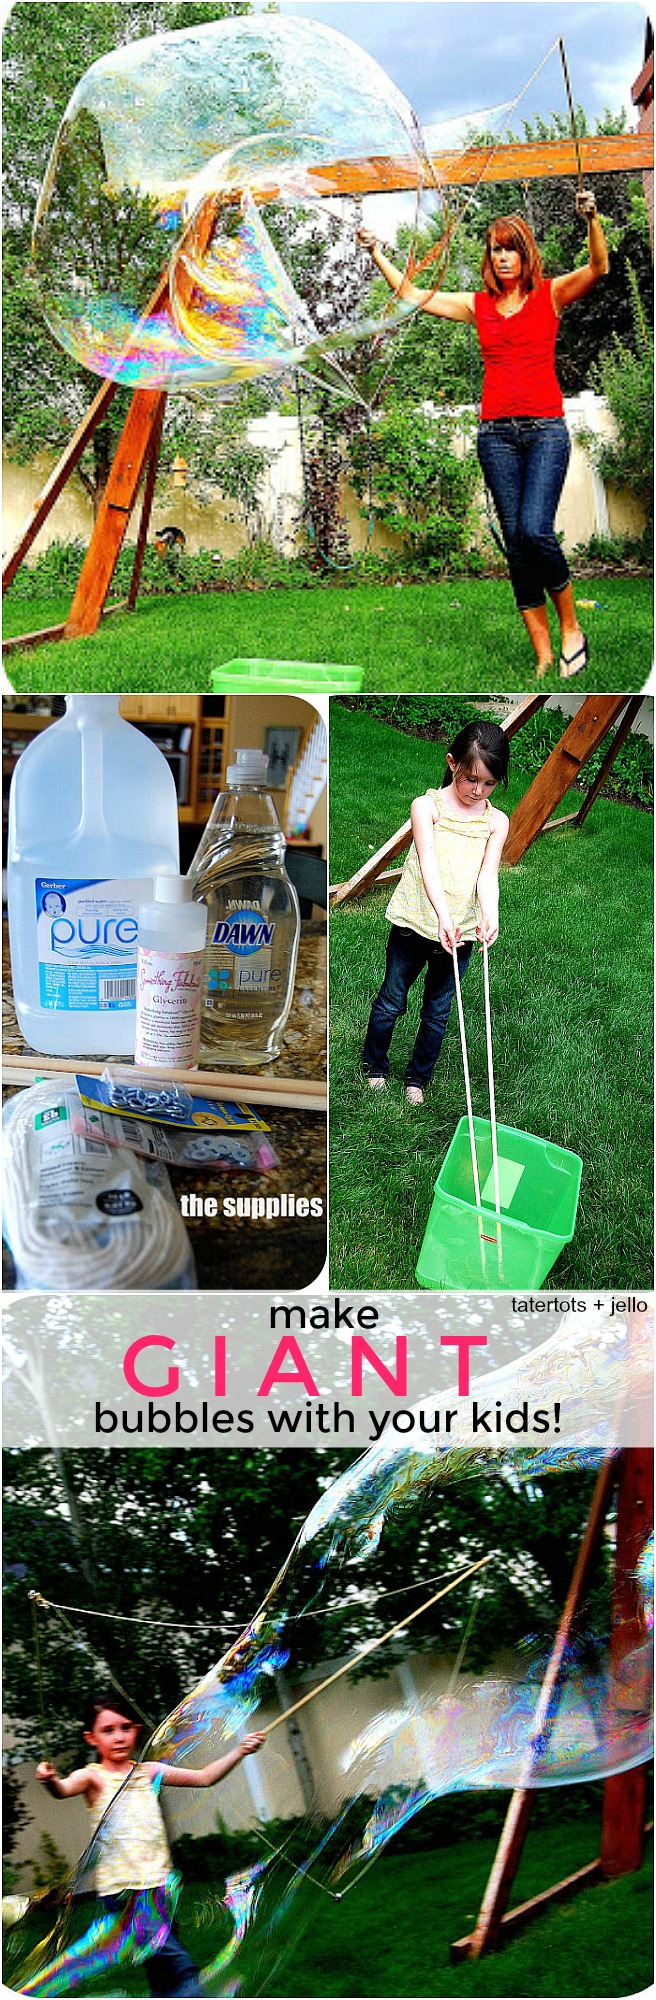 how to make giant bubbles with your kids this summer!